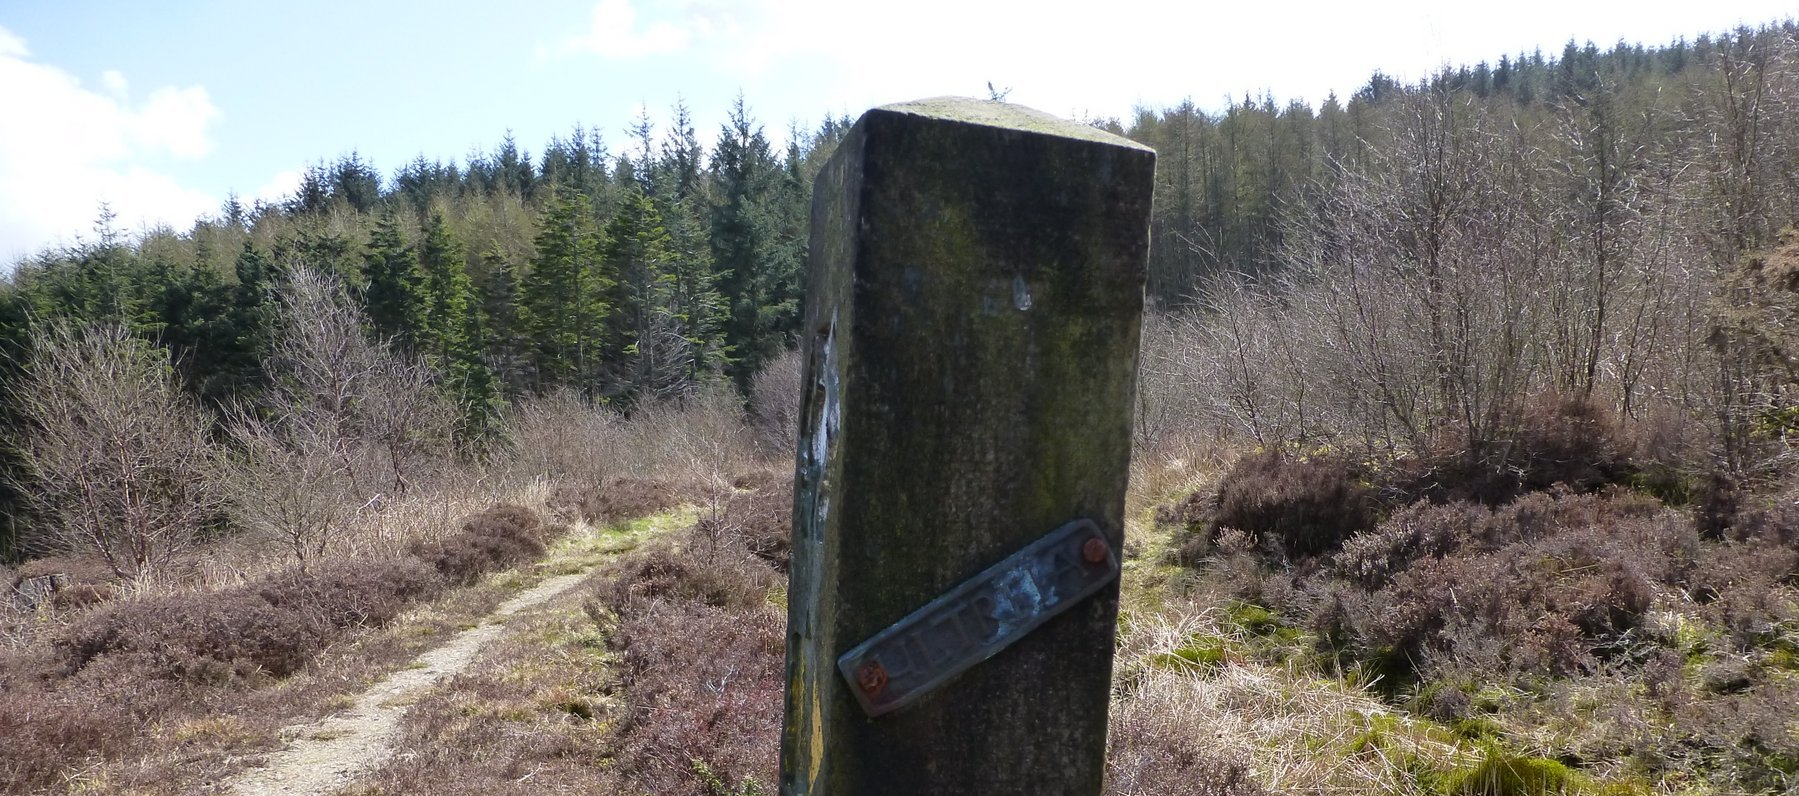 The 'Ultreia' plaque on this post means a kist is nearby!